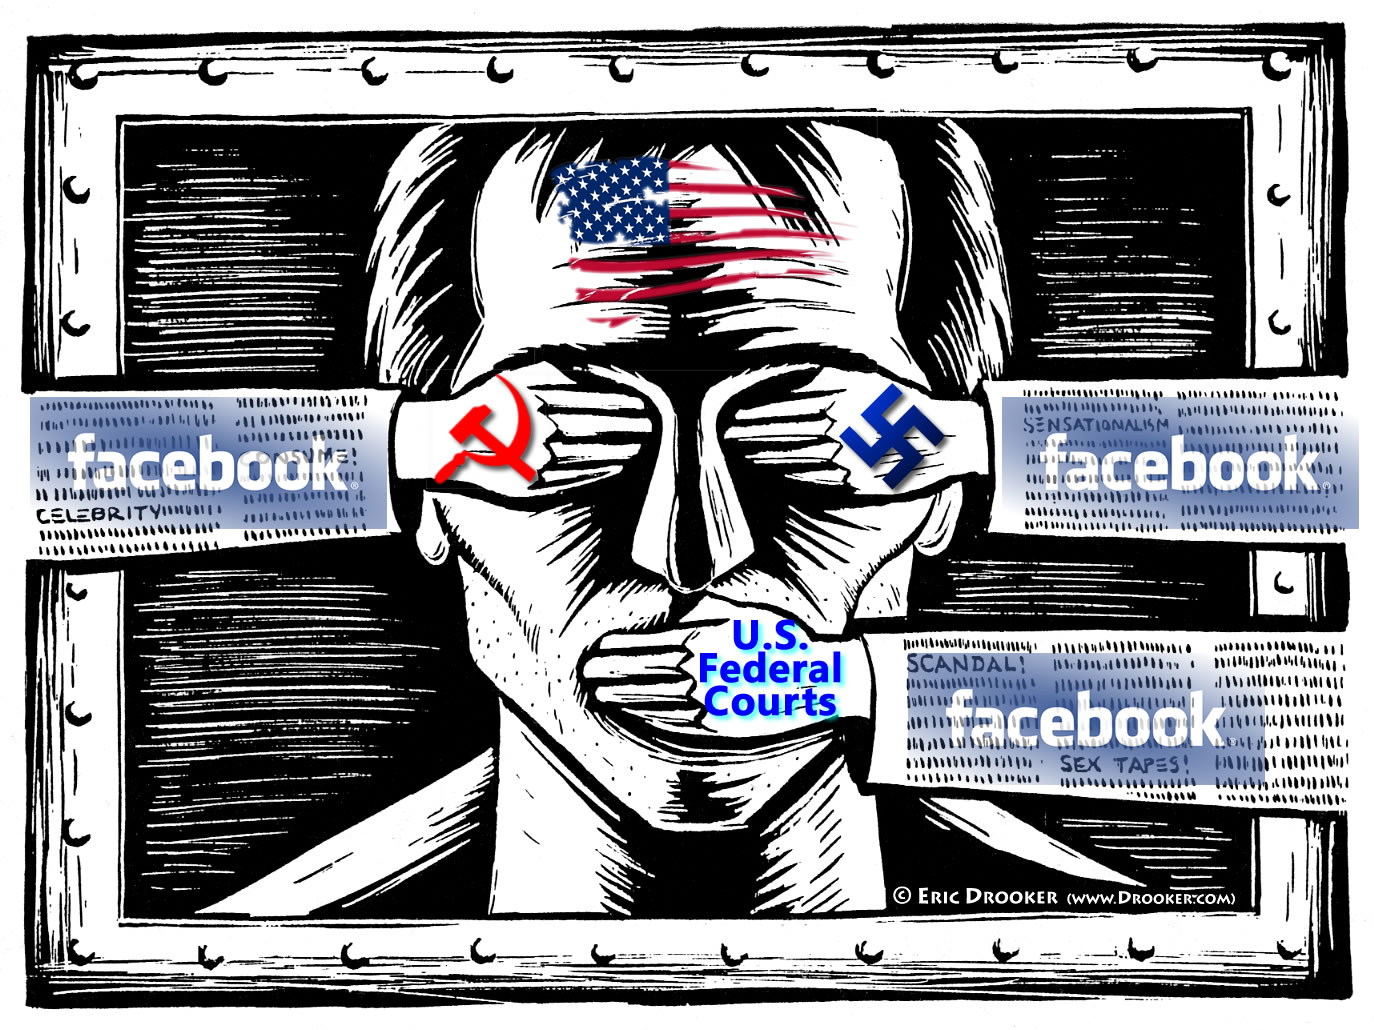 Reports of Facebook censorship of Leader v. Facebook judicial corruption scandal reporting